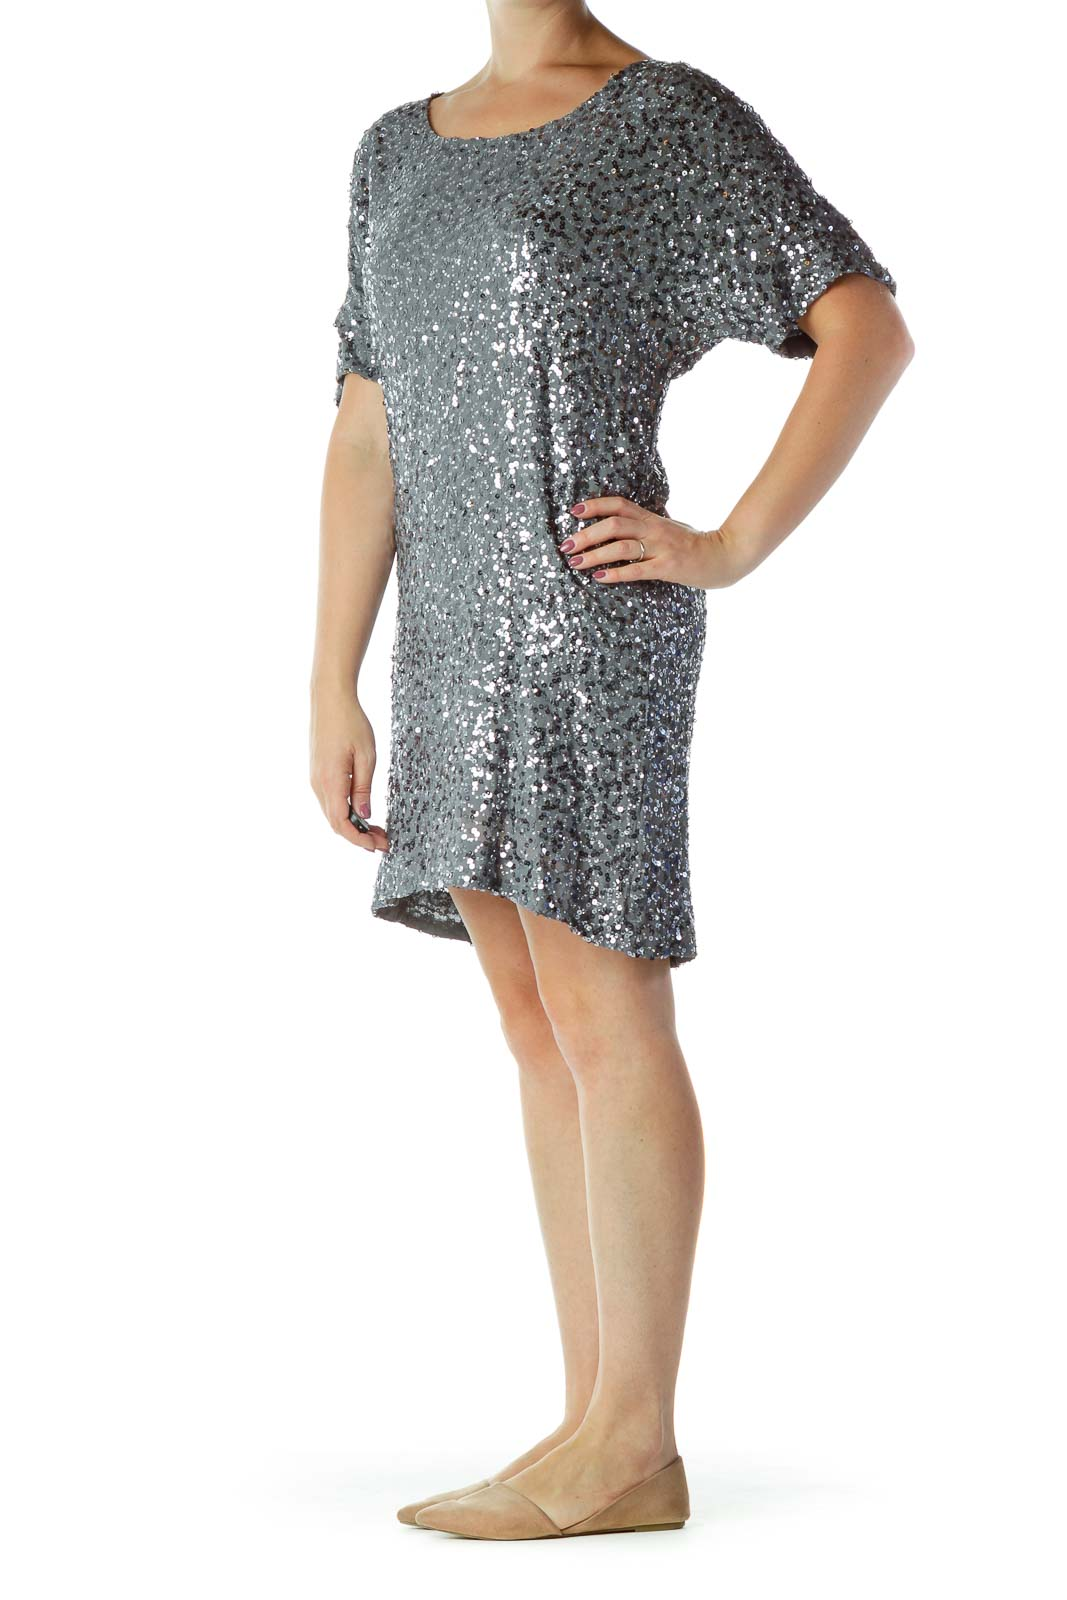 Gray Sequined Cocktail Dress